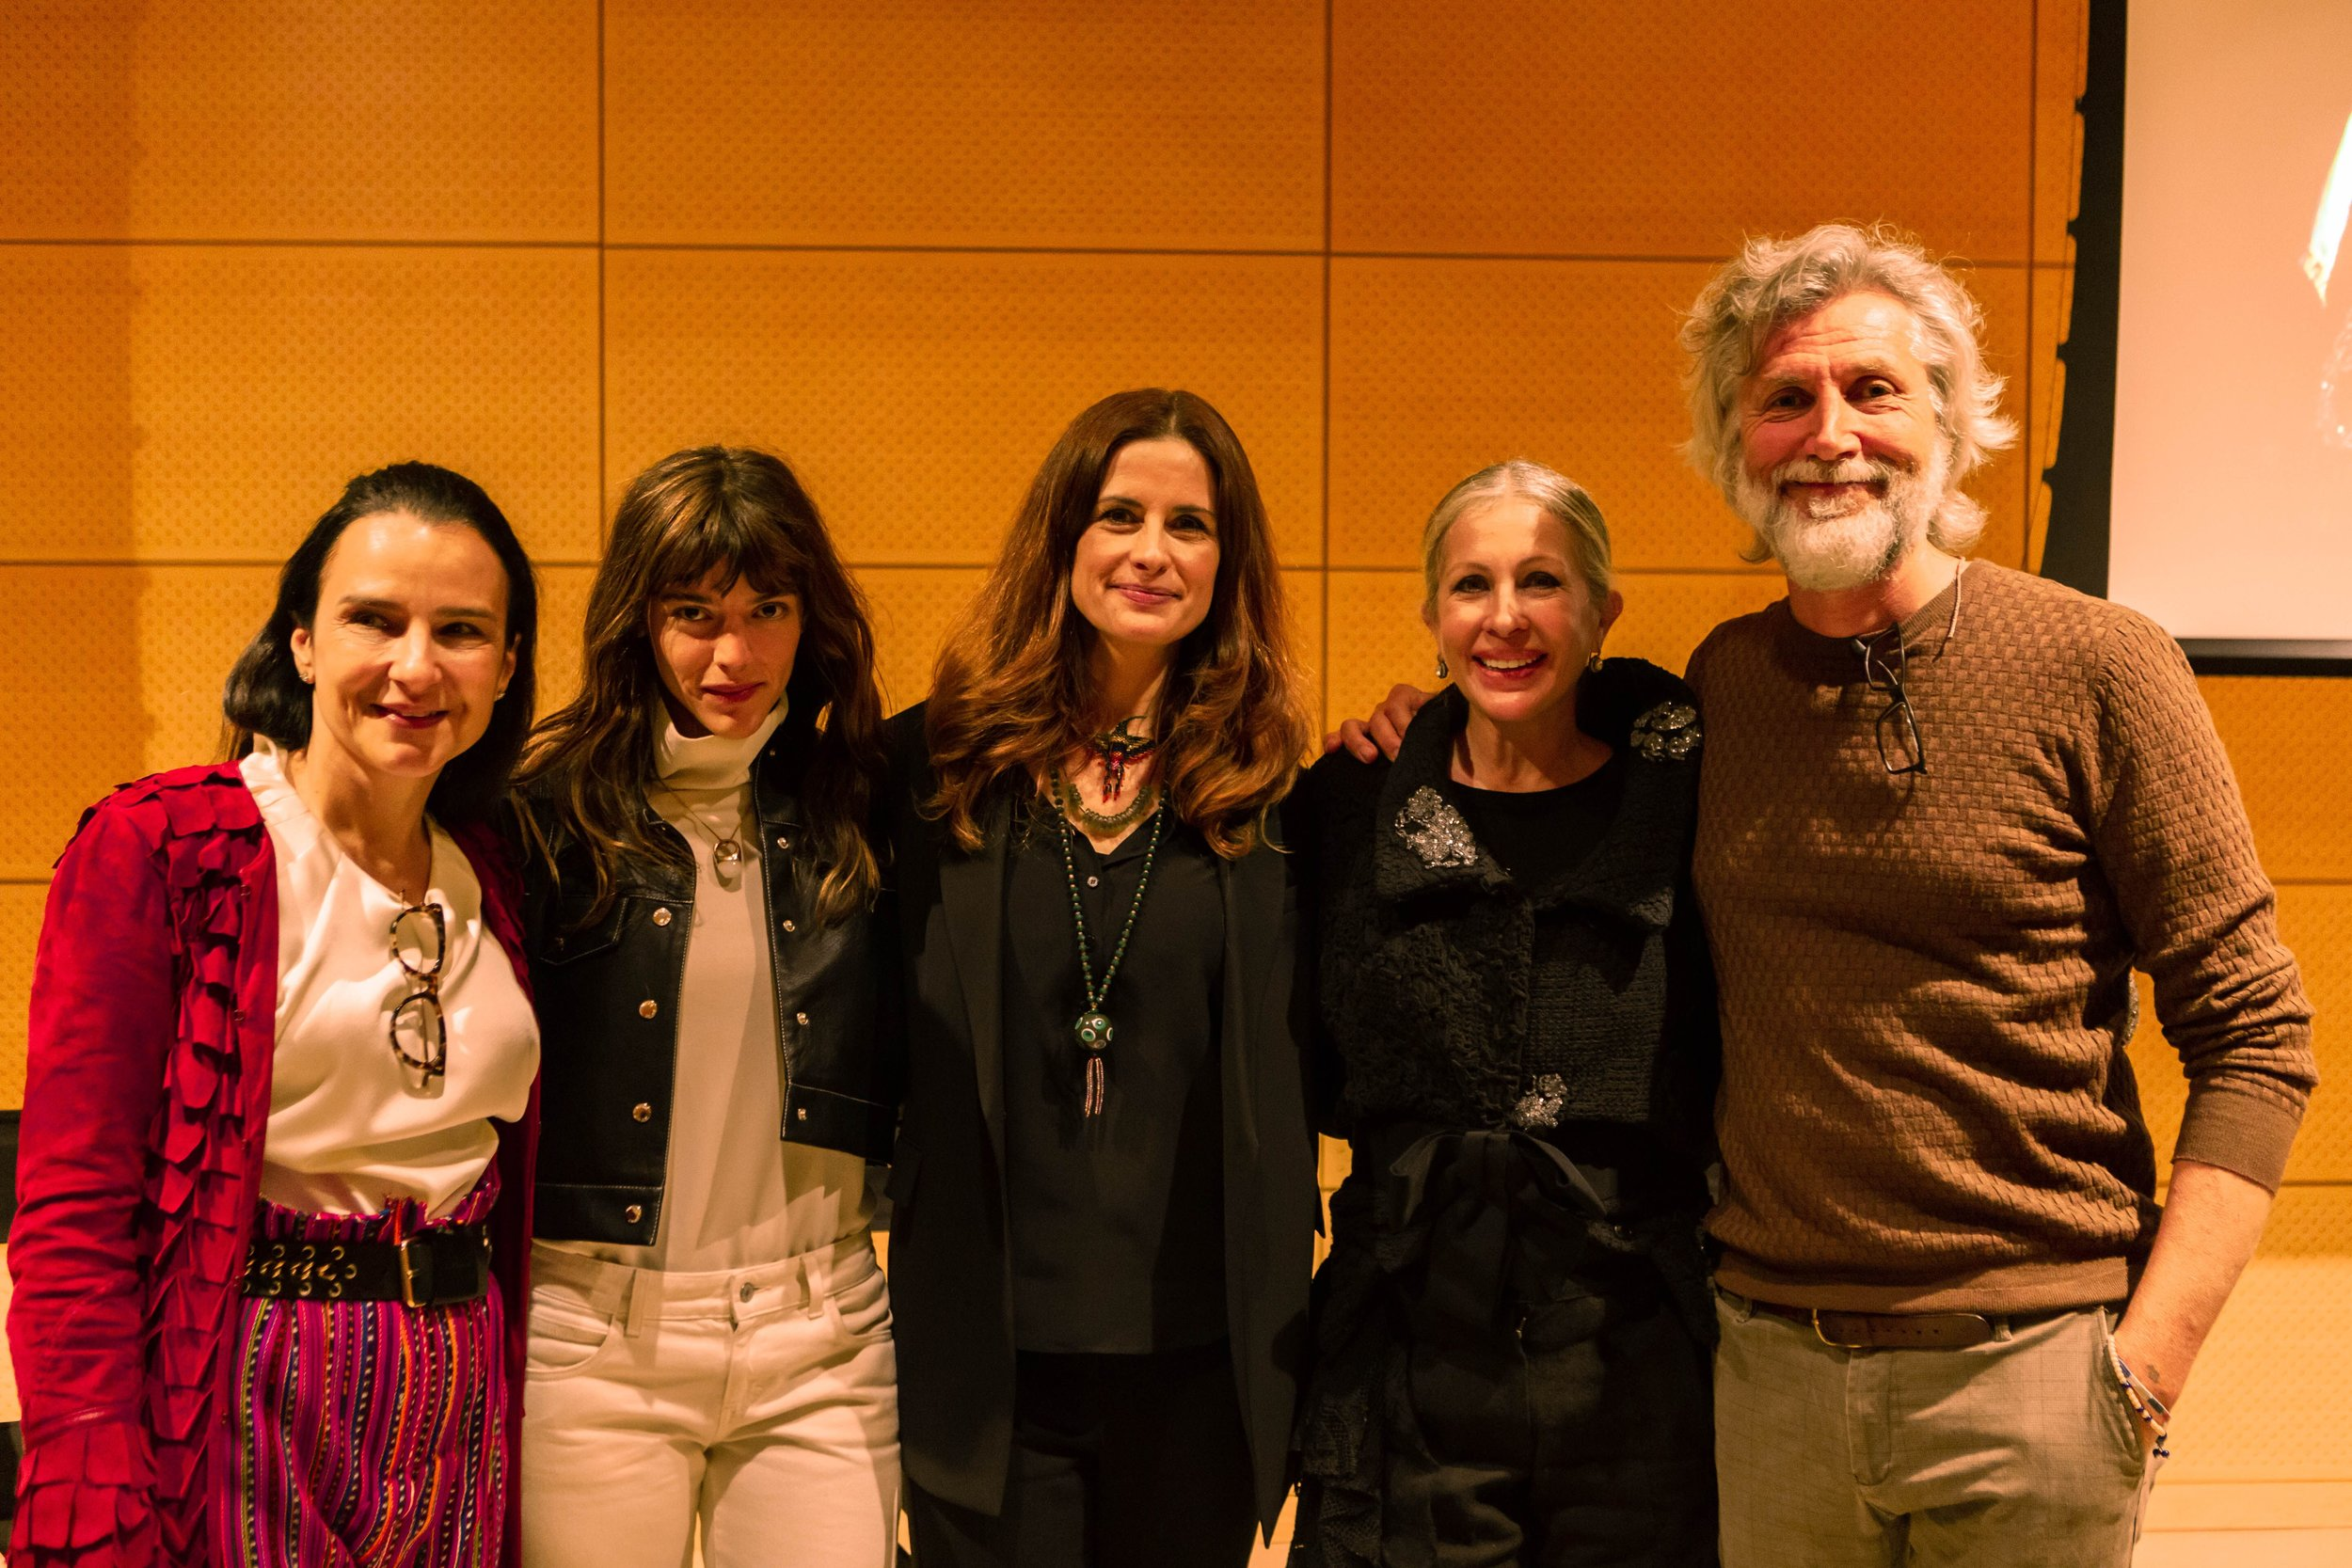 Marianne, Livia and Carmen with actress and model Calu Rivero and actor and director Michele Bevilacqua.